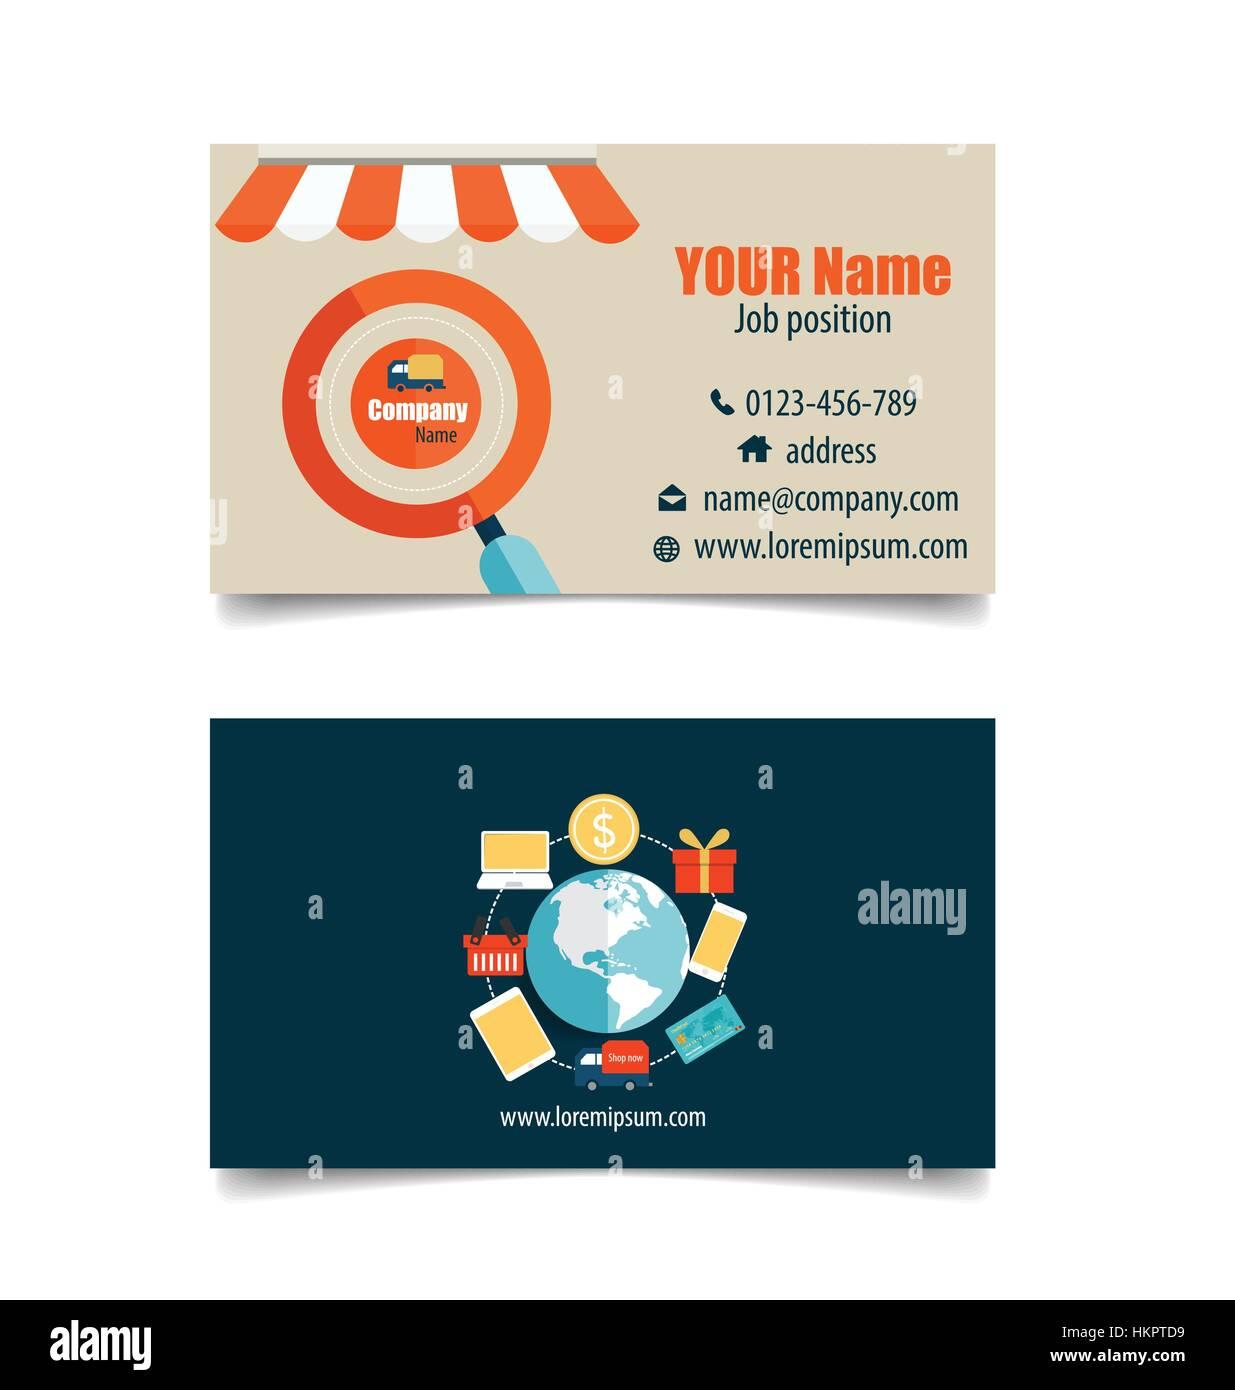 Modern business card template with business concept online shopping modern business card template with business concept online shopping stock vector art illustration vector image 132653173 alamy wajeb Choice Image